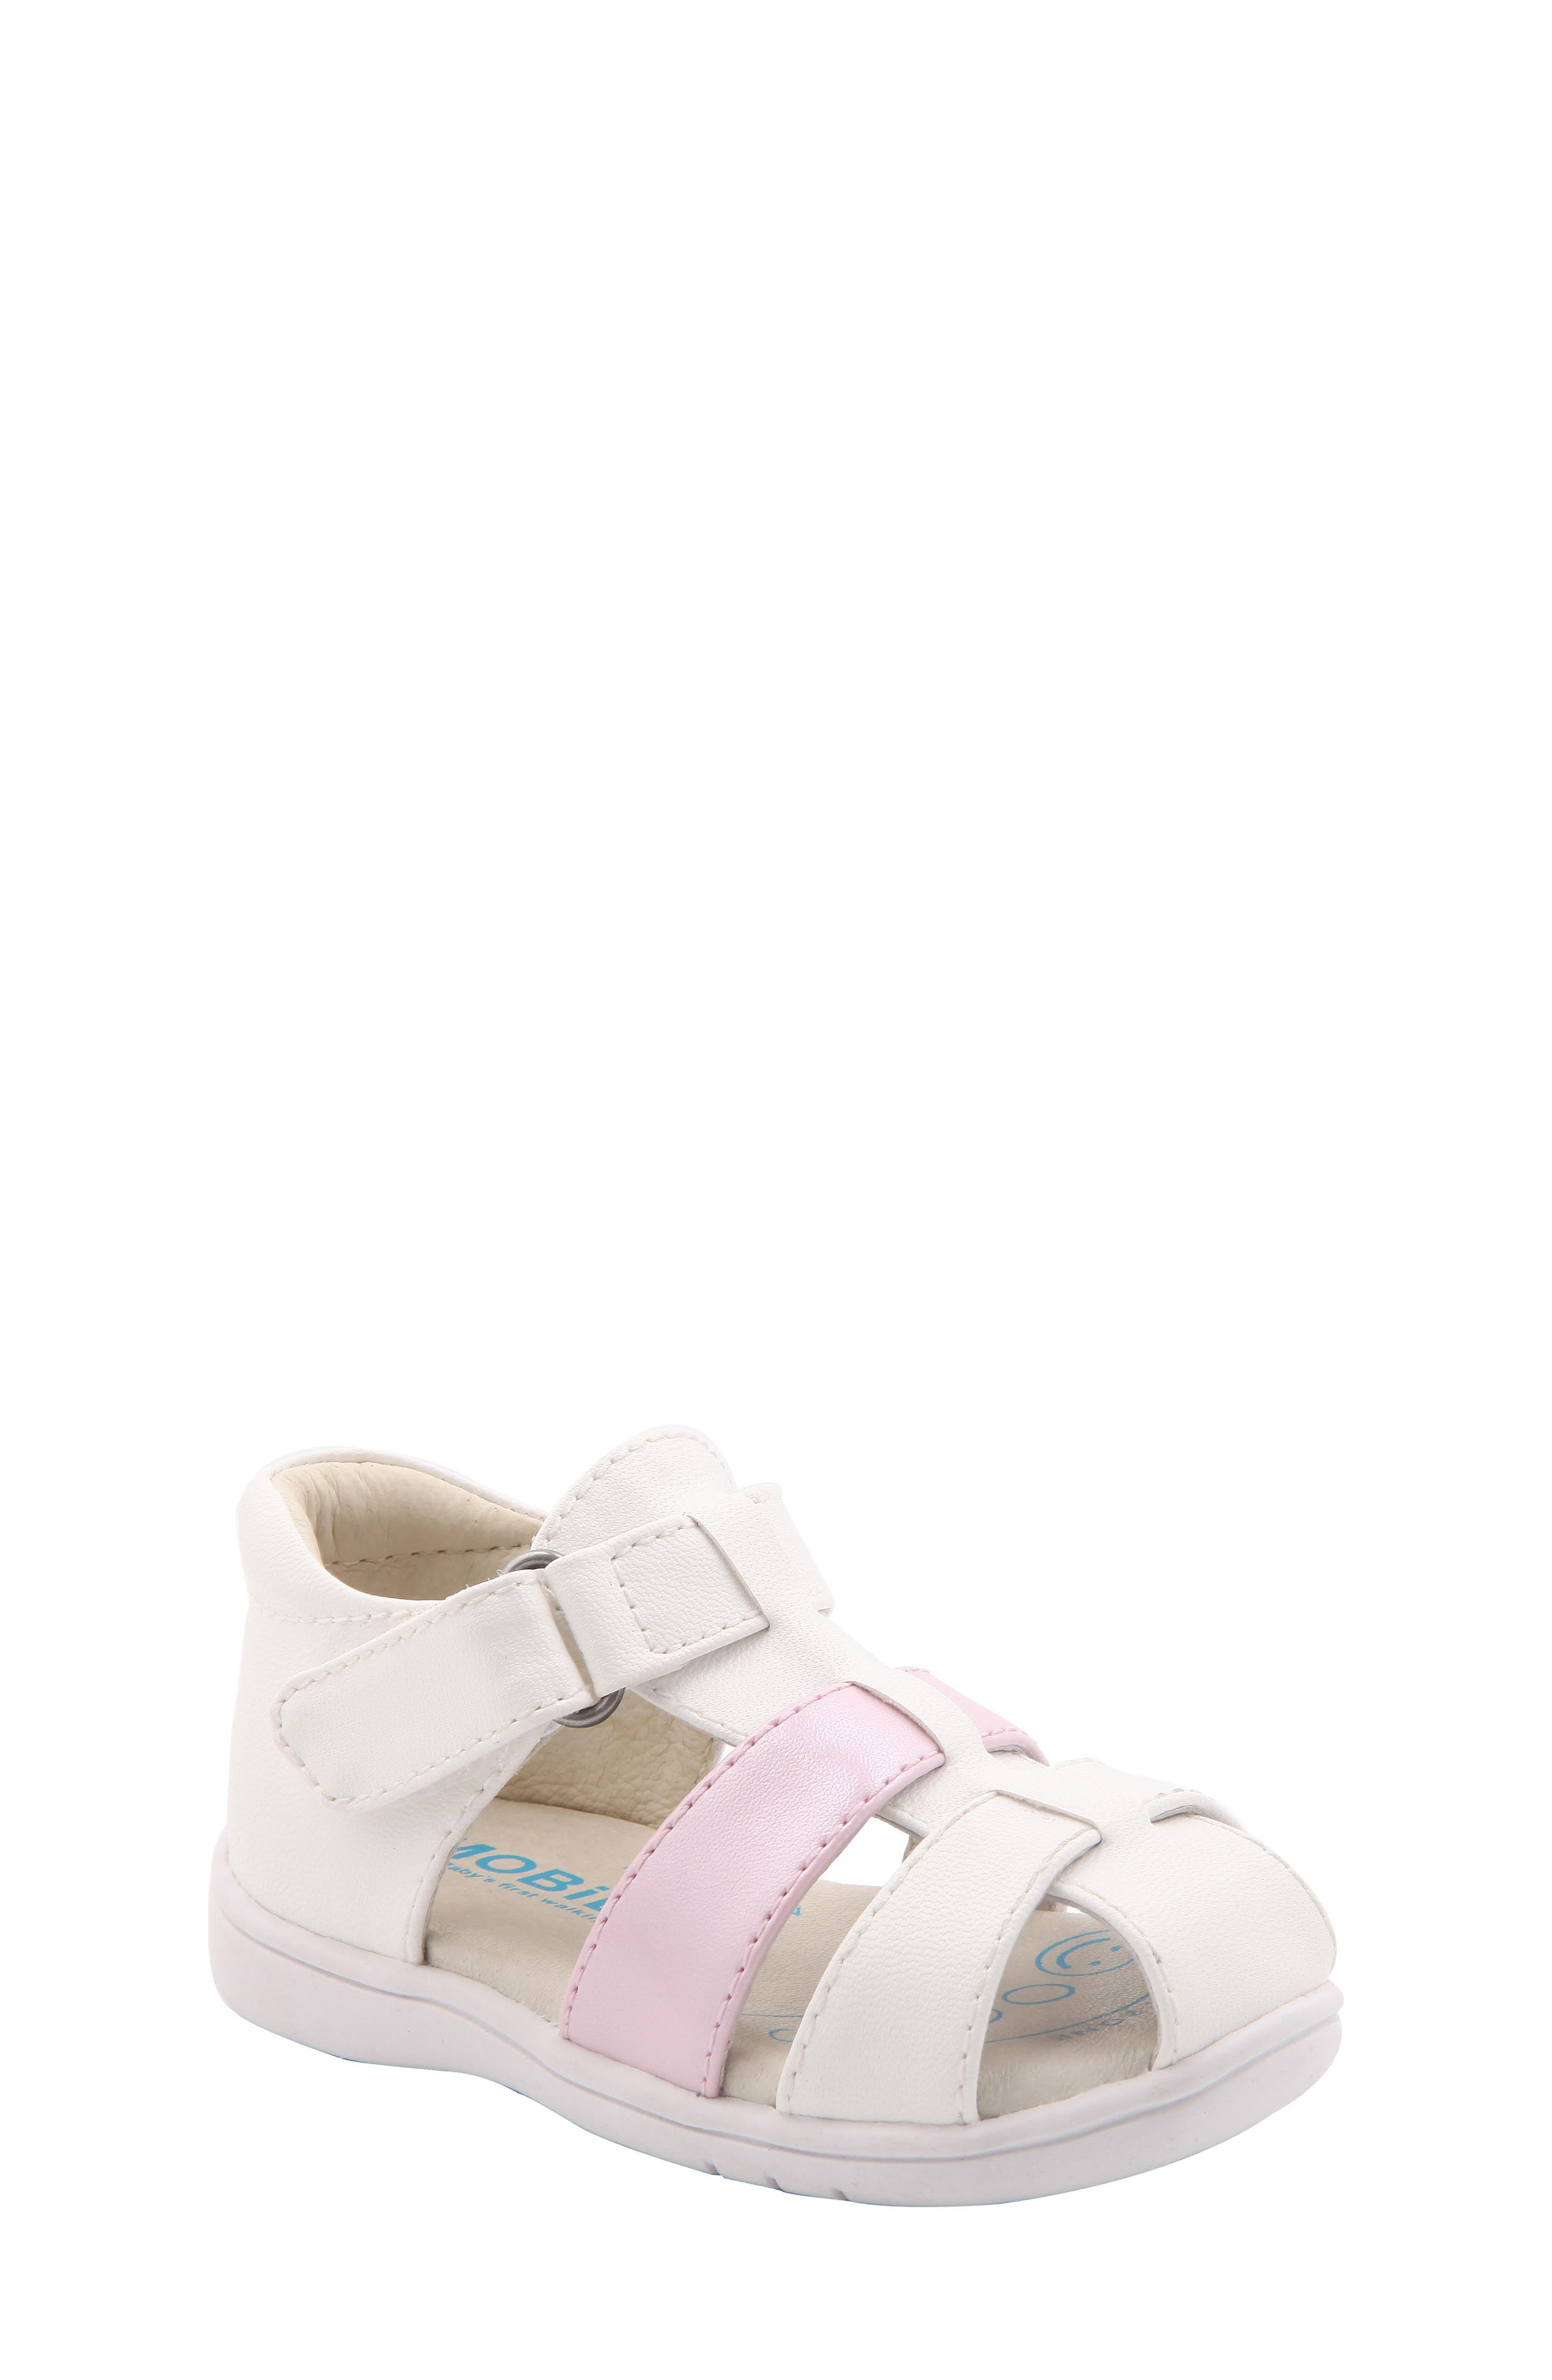 Gage Fisherman Sandal,                         Main,                         color, White Faux Leather